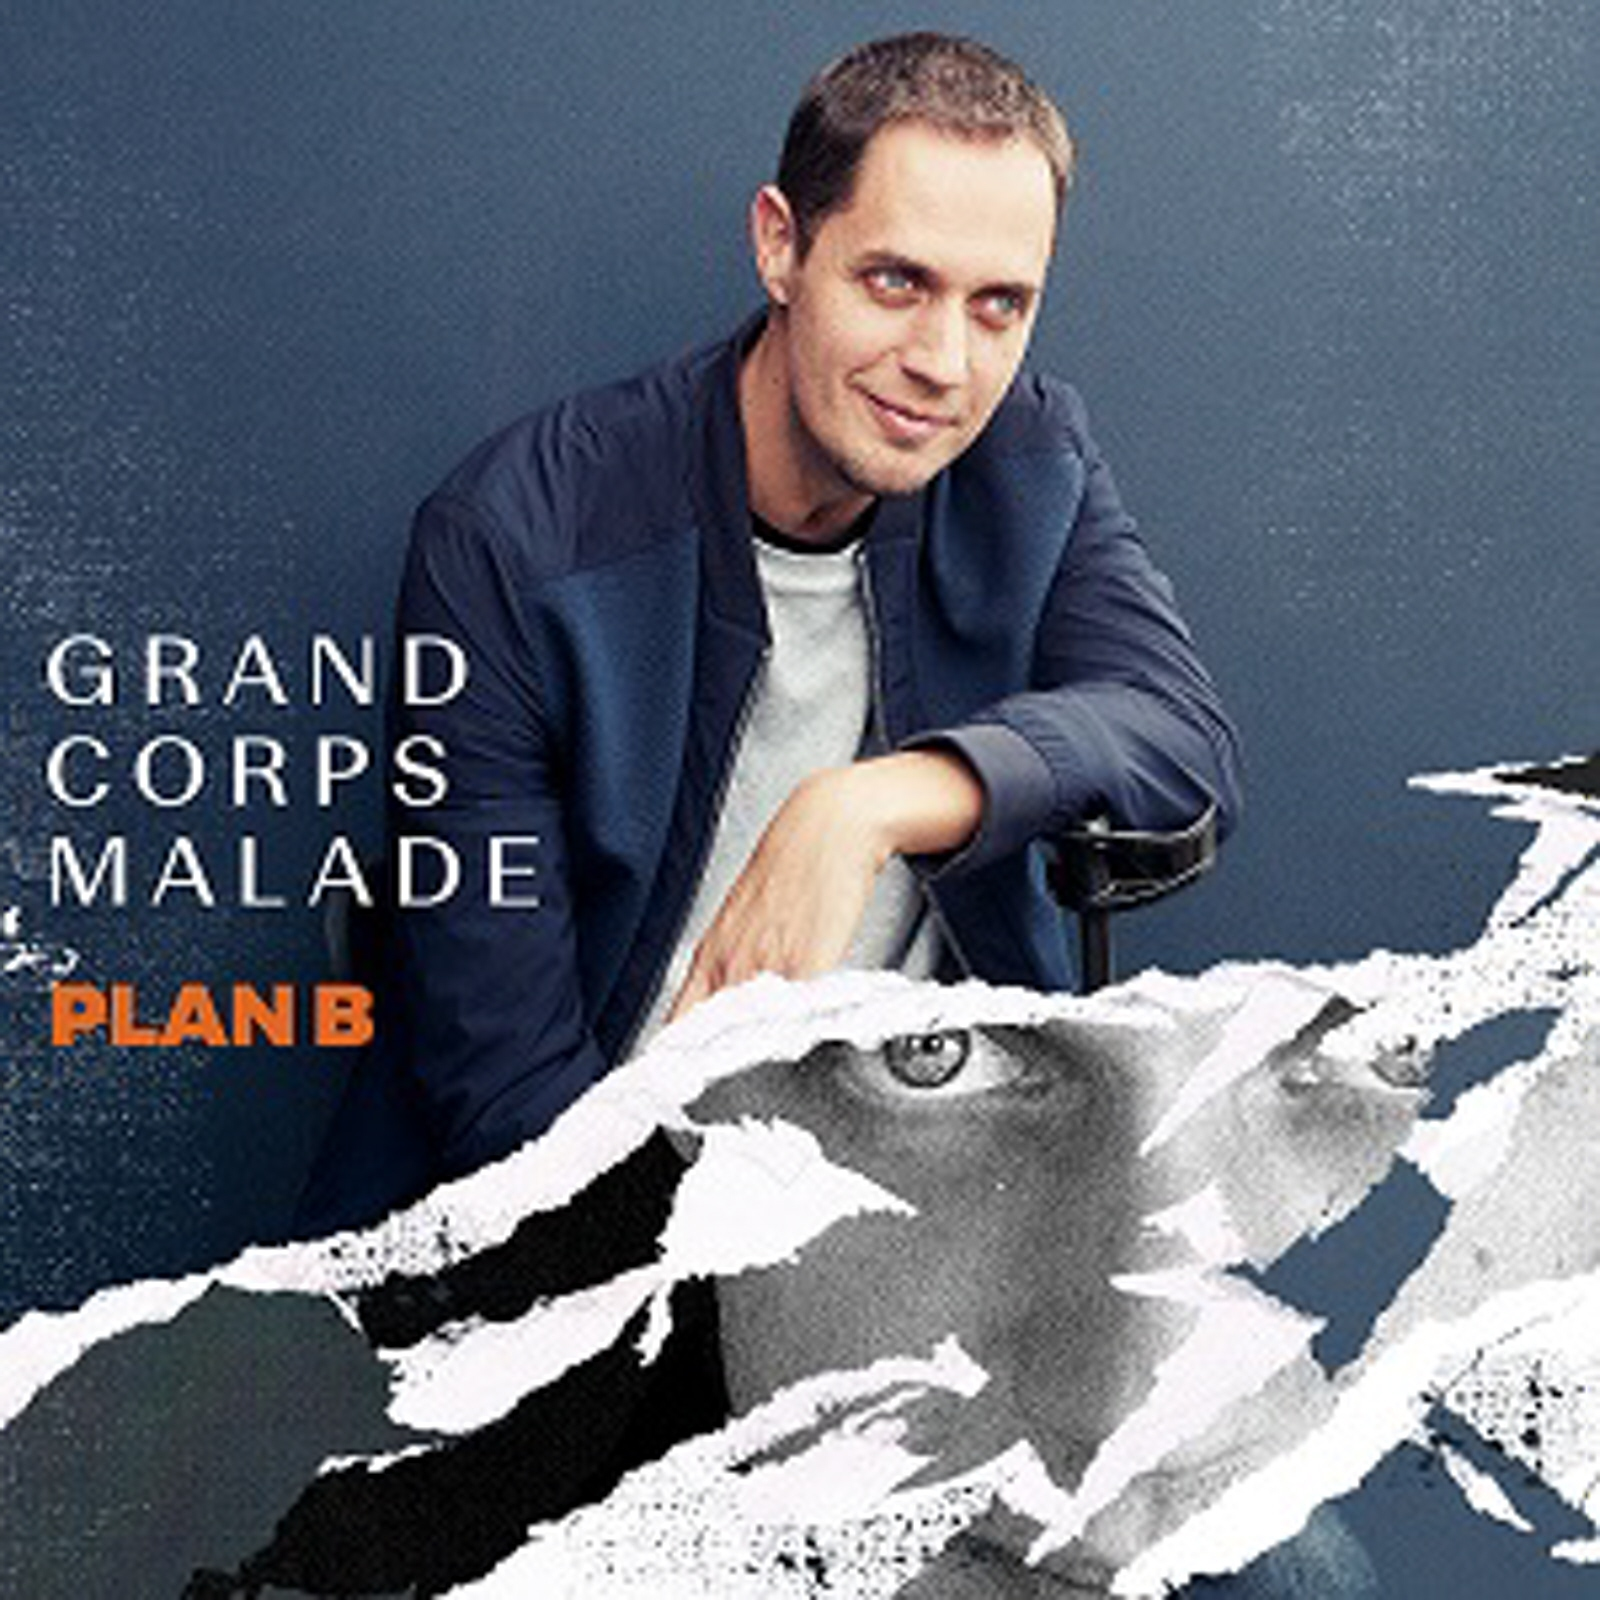 illustration-grand-corps-malade-le-tour-du-plan-b_1-1548408661